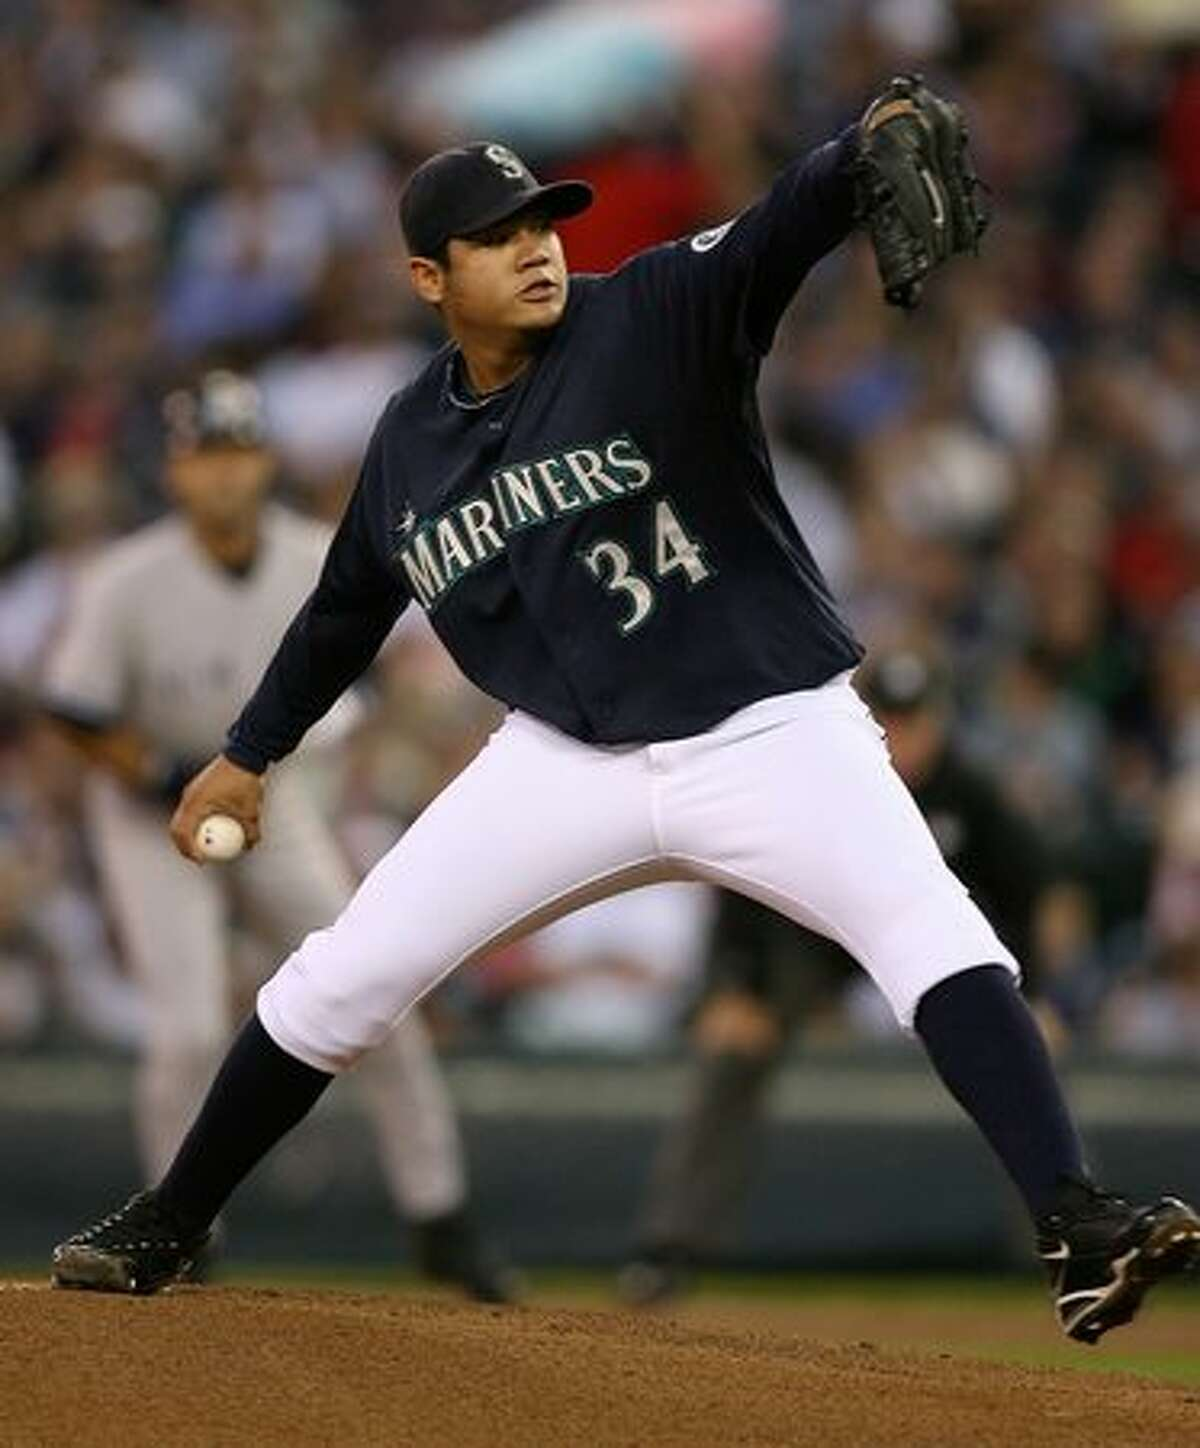 PROFESSIONAL SPORTS STAR OF THE YEAR NOMINEE: Mariners pitcher Felix Hernandez finished second to the Royals' Zack Greinke in the American League Cy Young Award voting. (Otto Greule Jr/Getty Images)